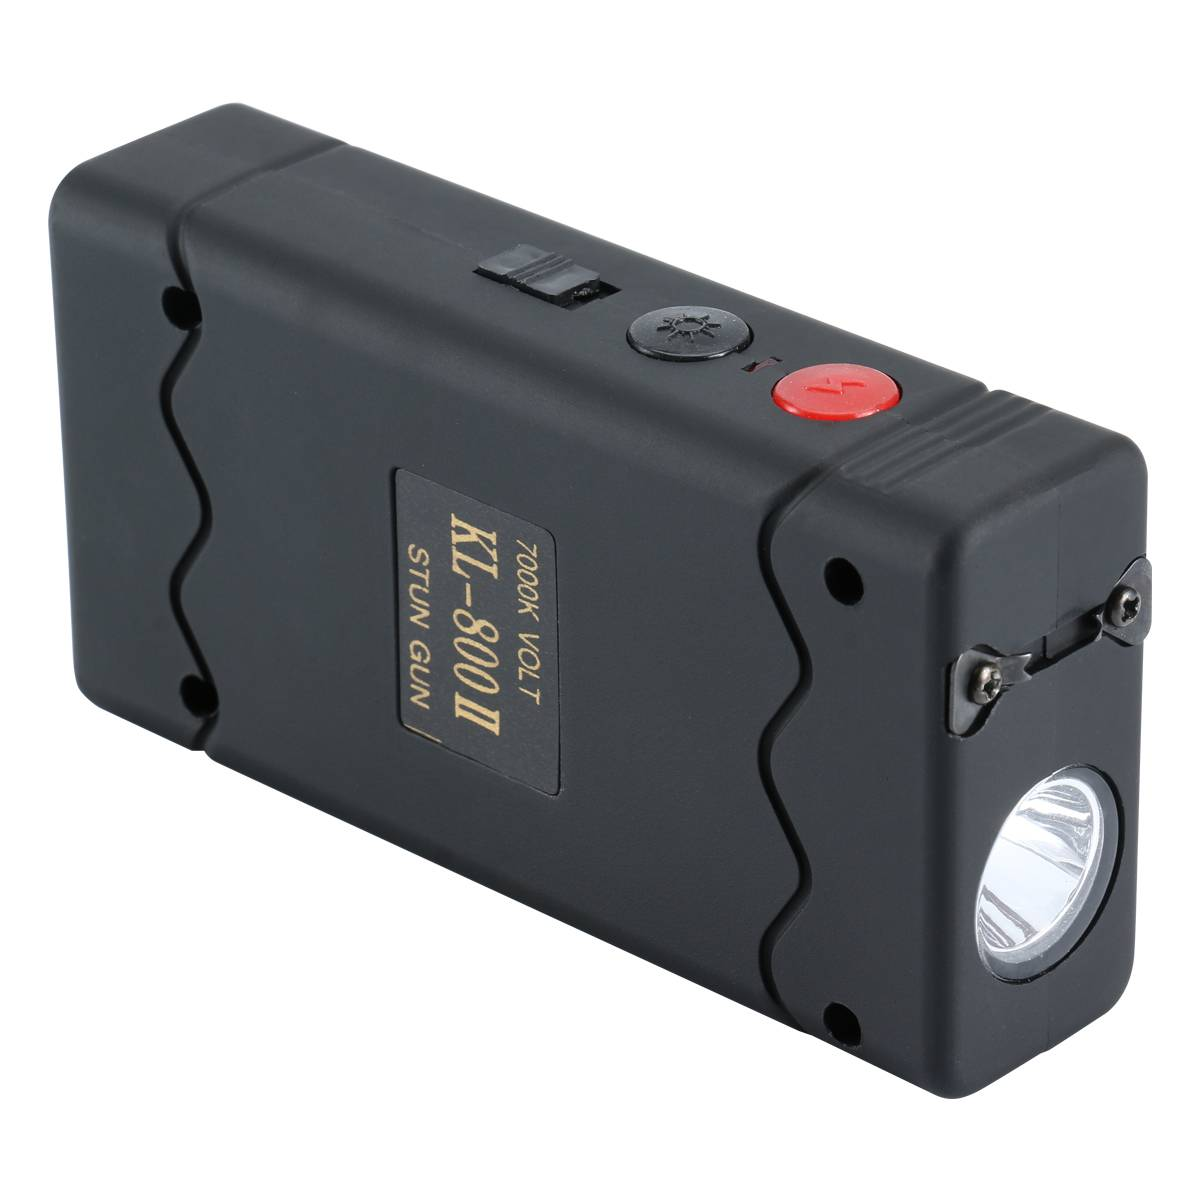 Power Maximum Stun Gun, 25 Million Volt, with LED Light and Disable Pin Pink/KL-800II-P2